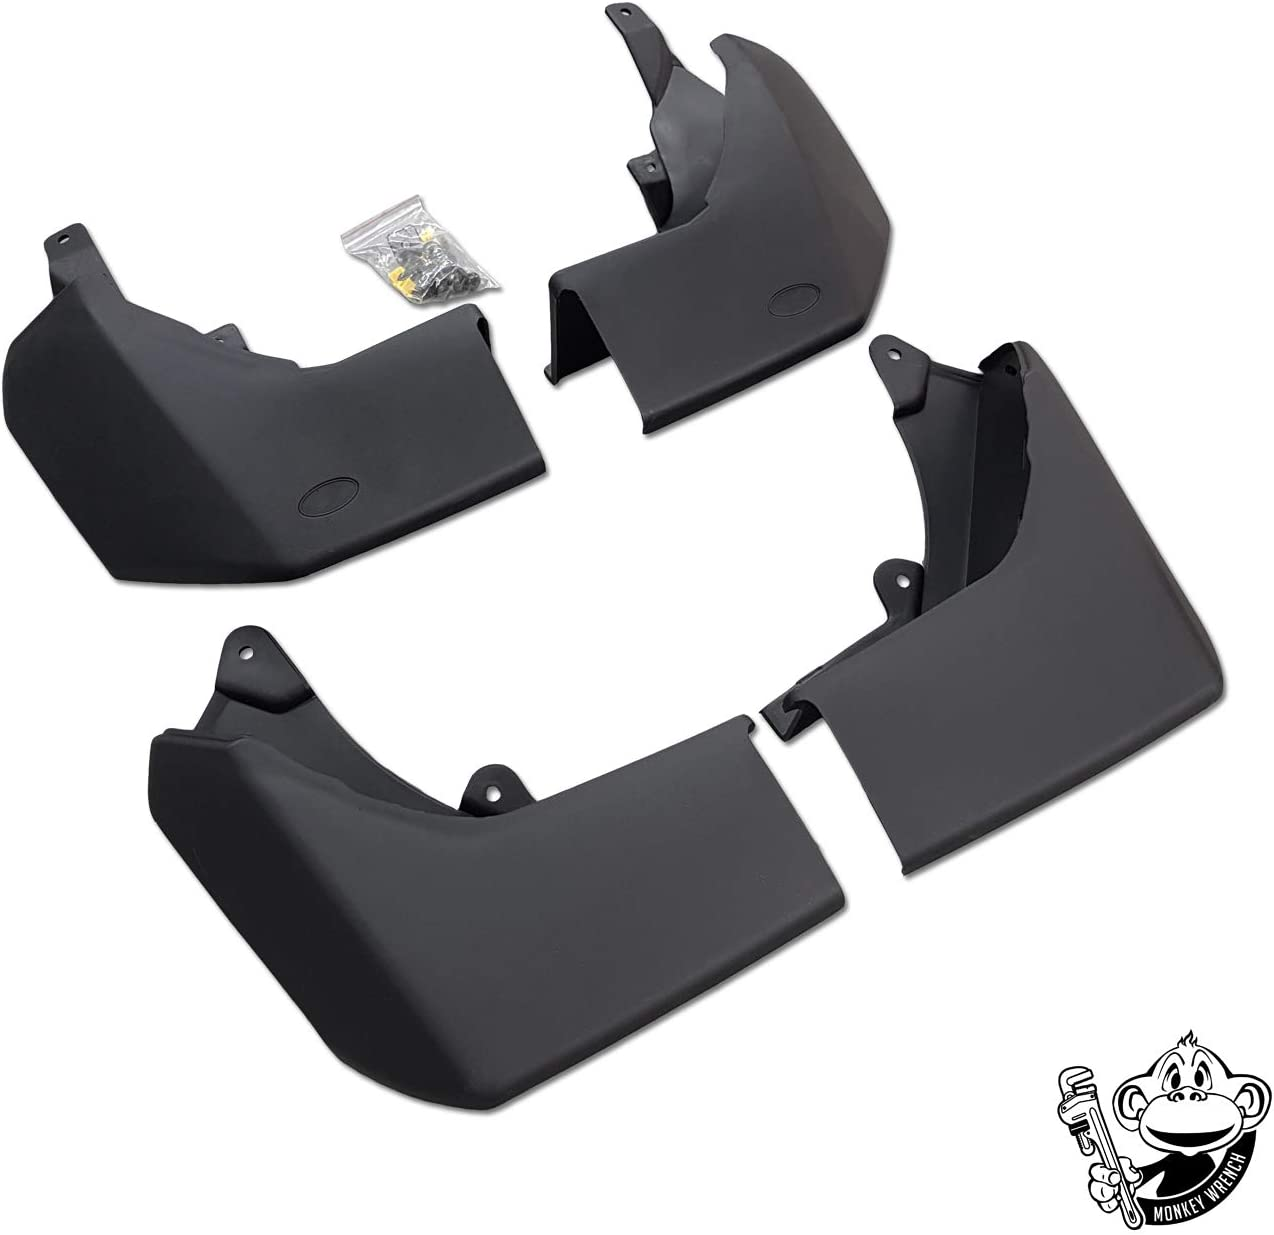 LAND ROVER DISCOVERY 3 /& 4 FRONT MUDFLAP SET CAS500010PCL